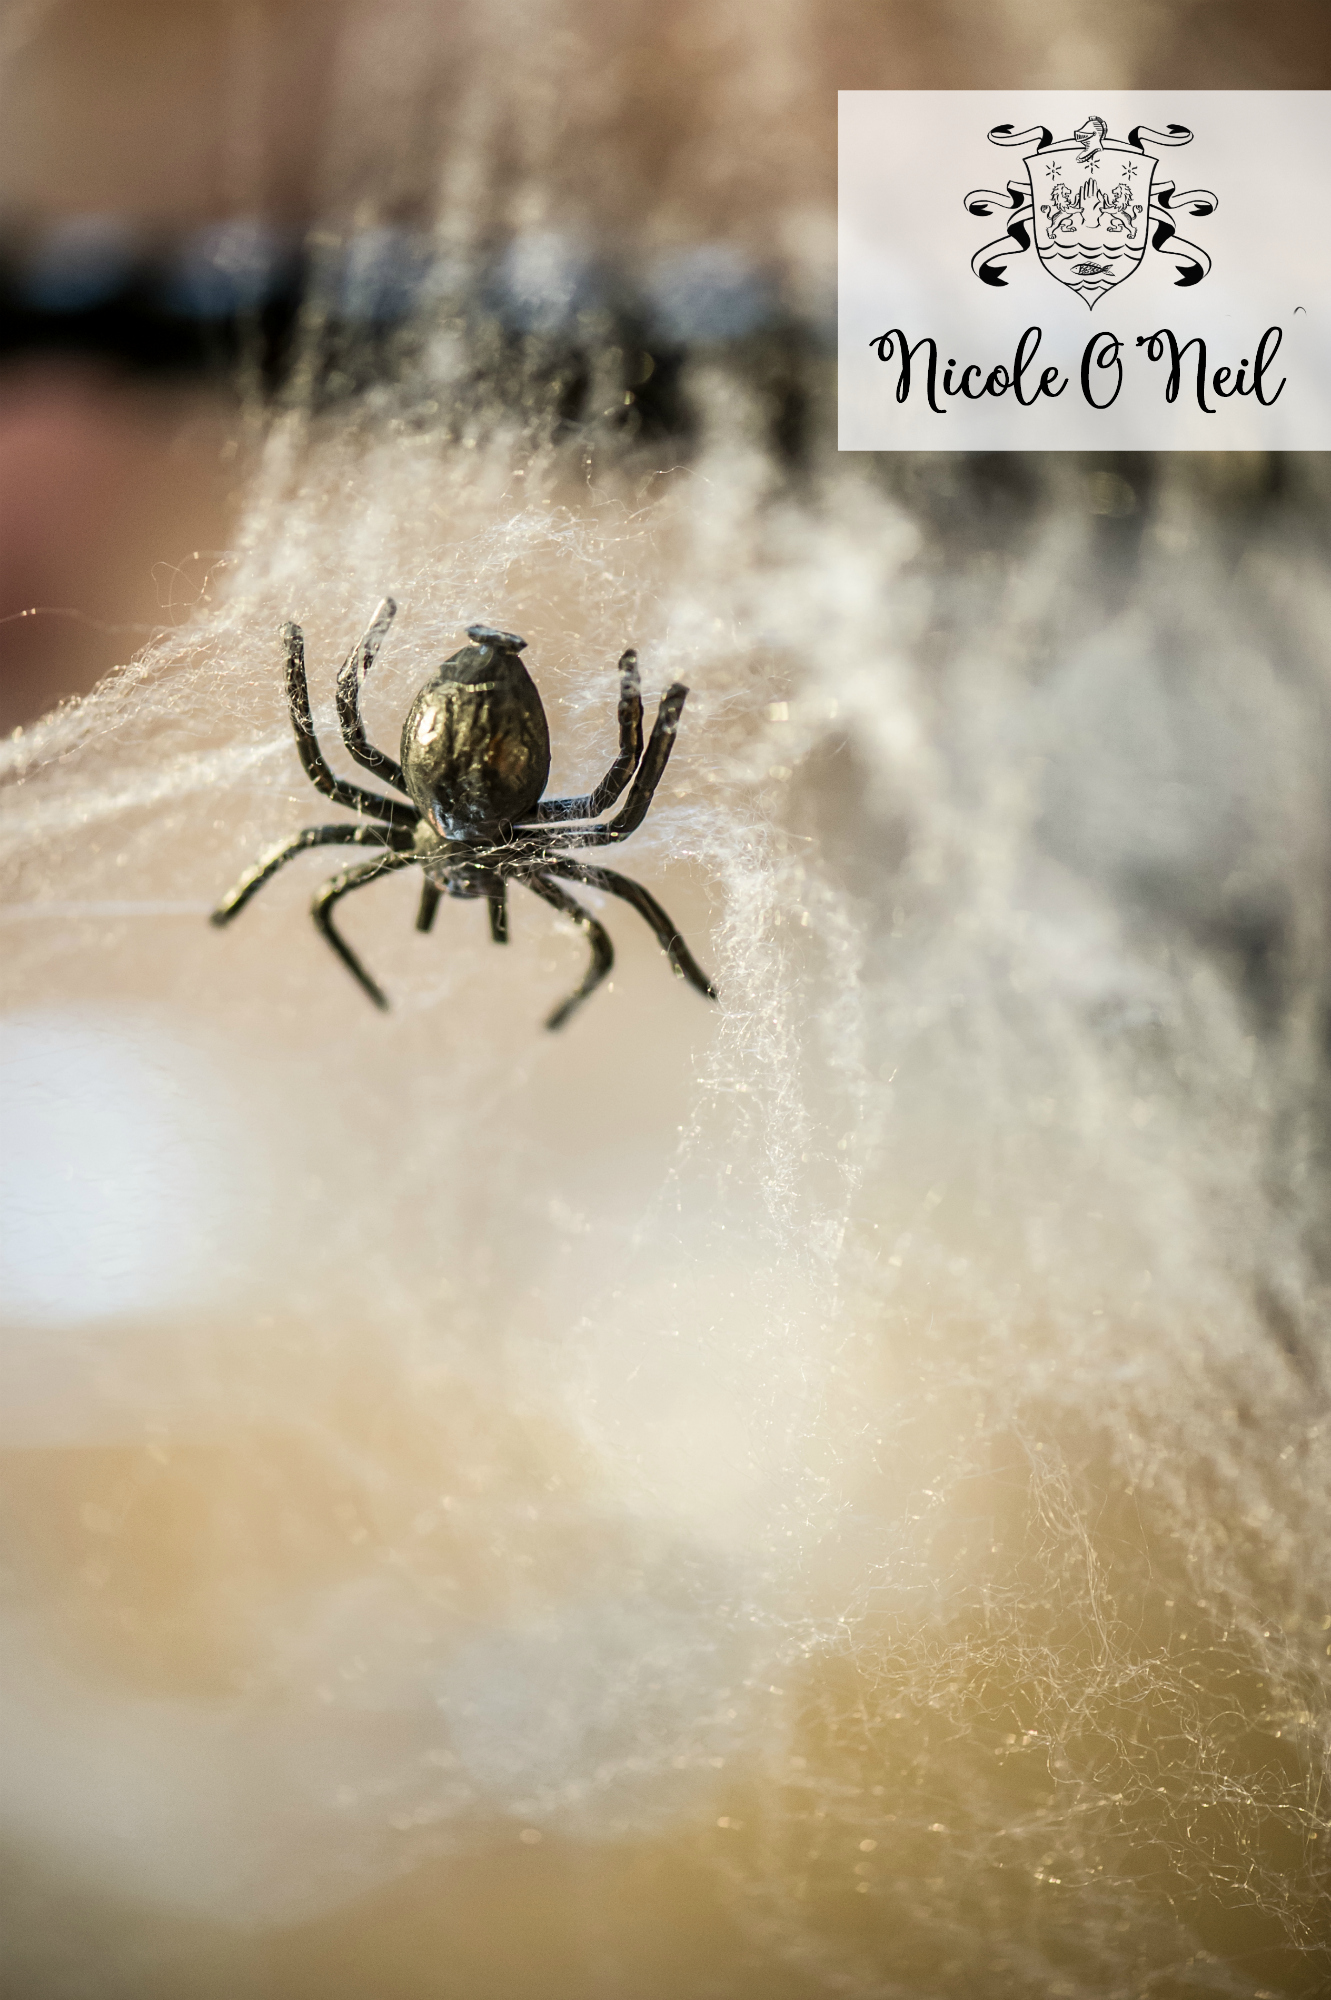 Halloween Party Decoration Ideas and Halloween Table Setting Inspiration - Fake Cobwebs and Spiders